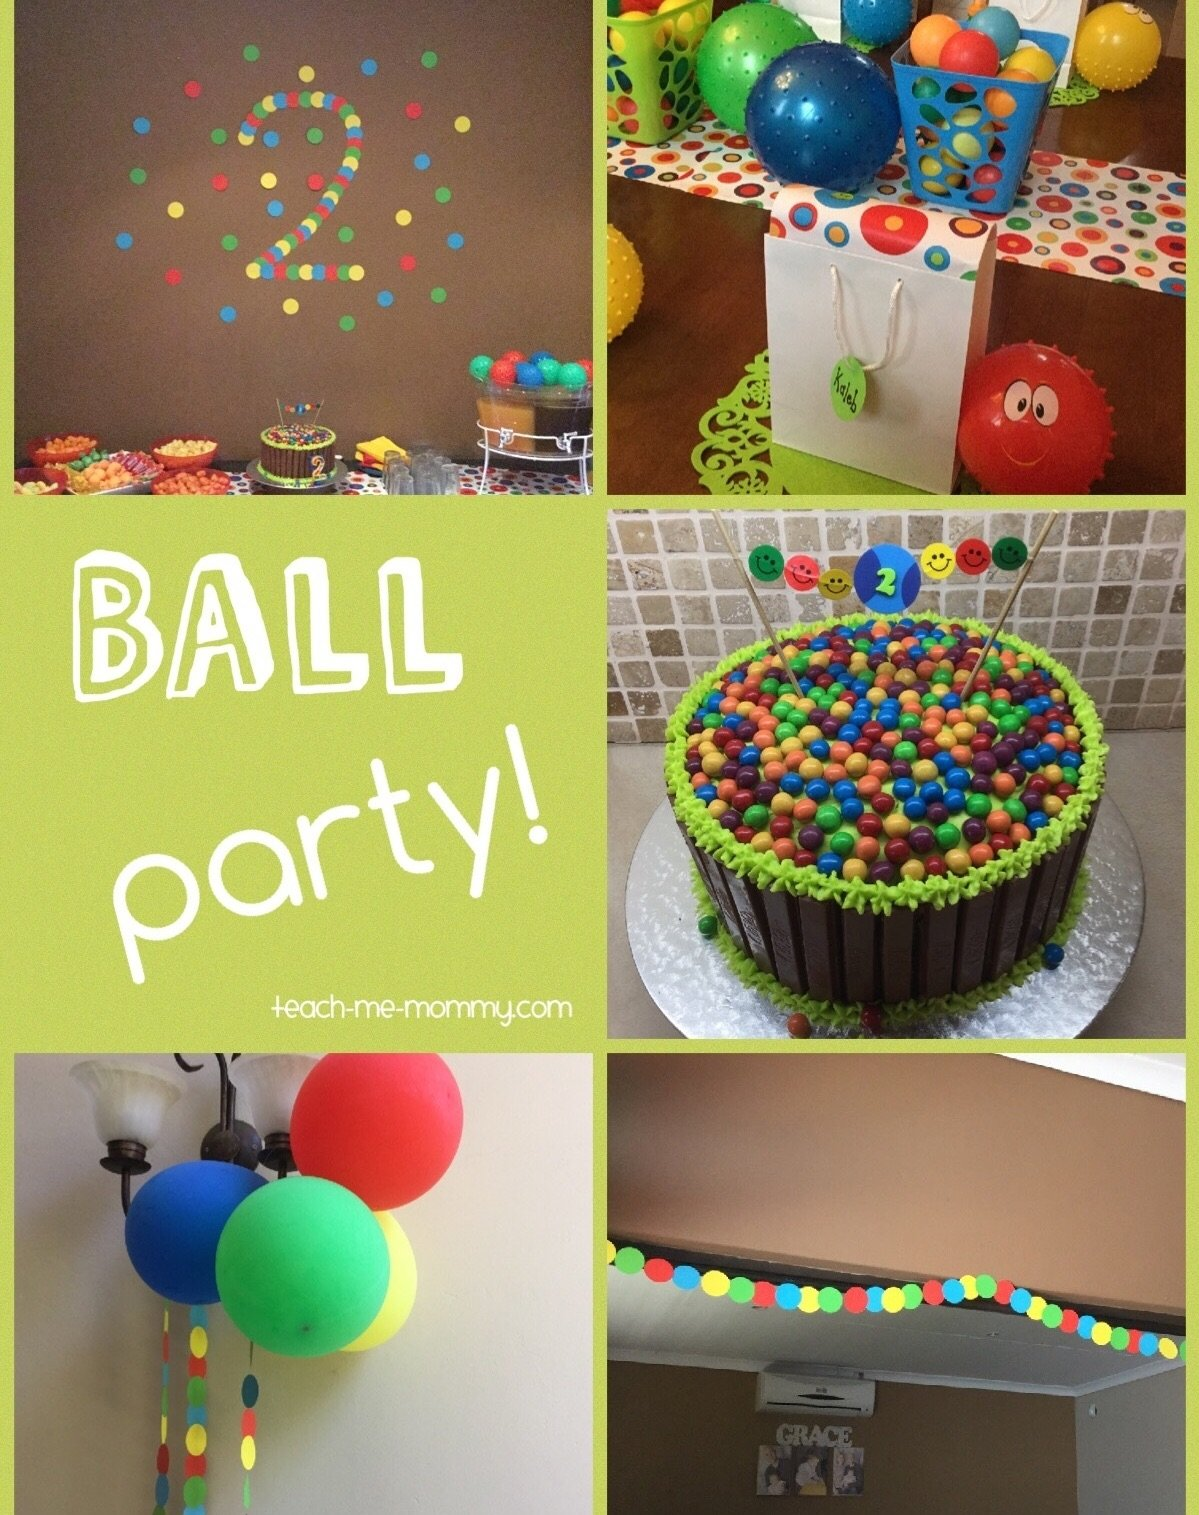 10 Fabulous Birthday Party Ideas For 8 Year Old Boy